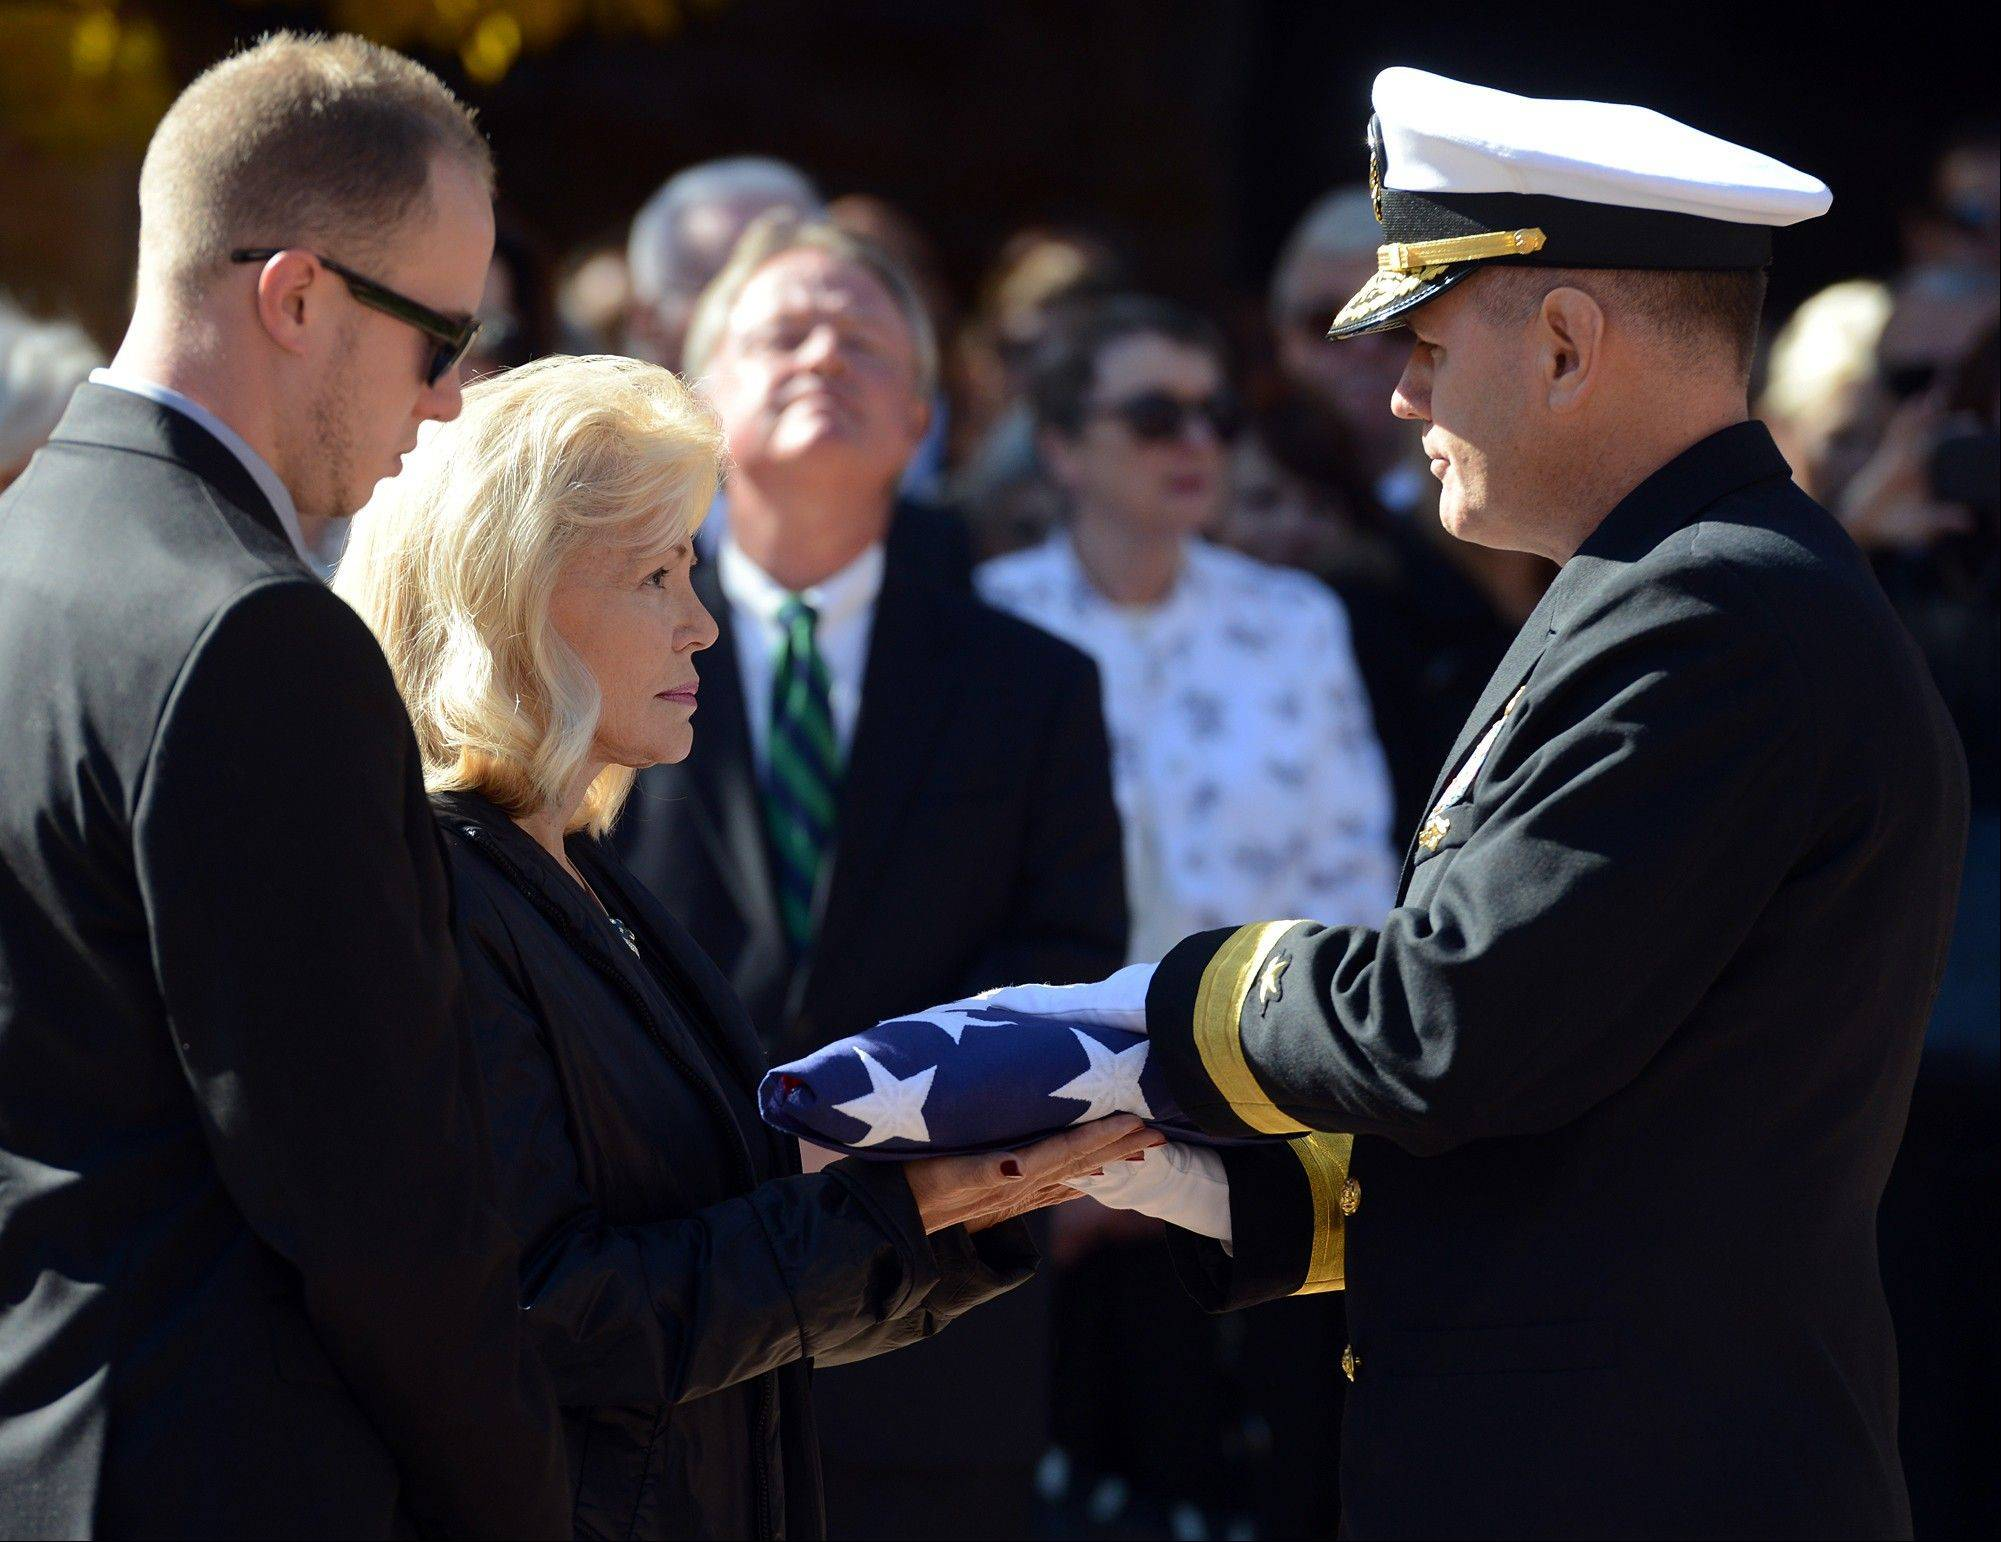 Patty Carpenter, left, receives the flag that was draped over her husband, astronaut Scott Carpenter's casket from U.S. Navy Rear Adm. Thomas Bond on Saturday, Nov. 2, 2013, in Boulder, Colo. Carpenter was the second American to orbit the Earth, following John Glenn.